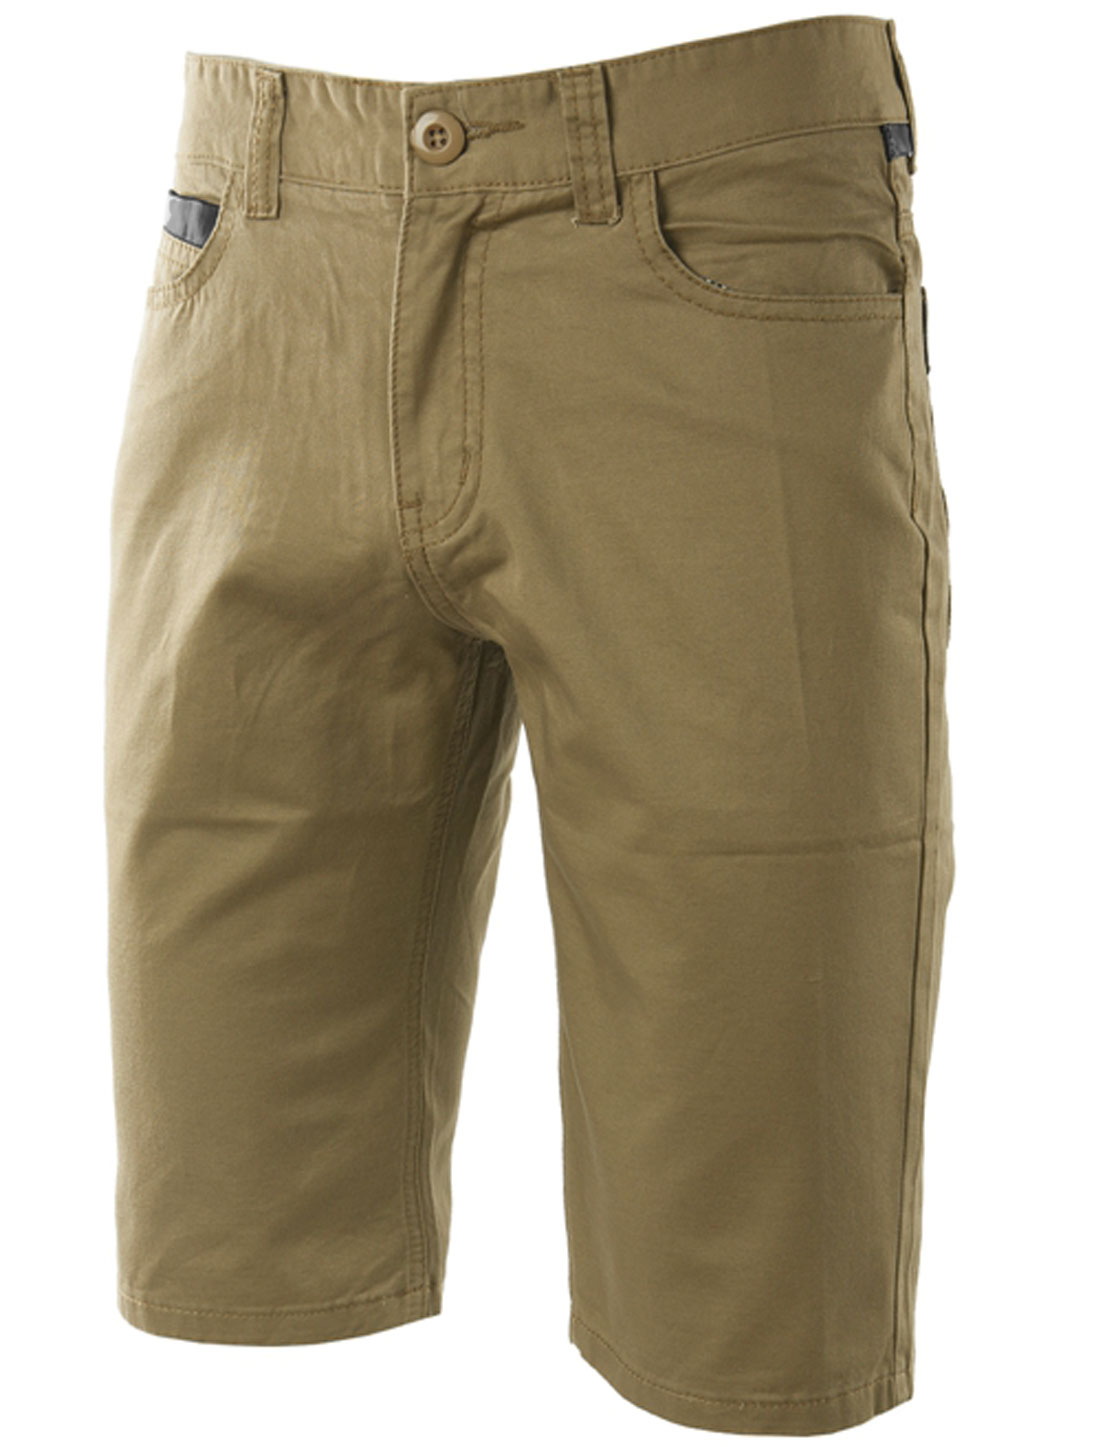 Man Mid Rise Front Hip Pockets Zip Fly Leather Trim Chino Shorts Khaki W32